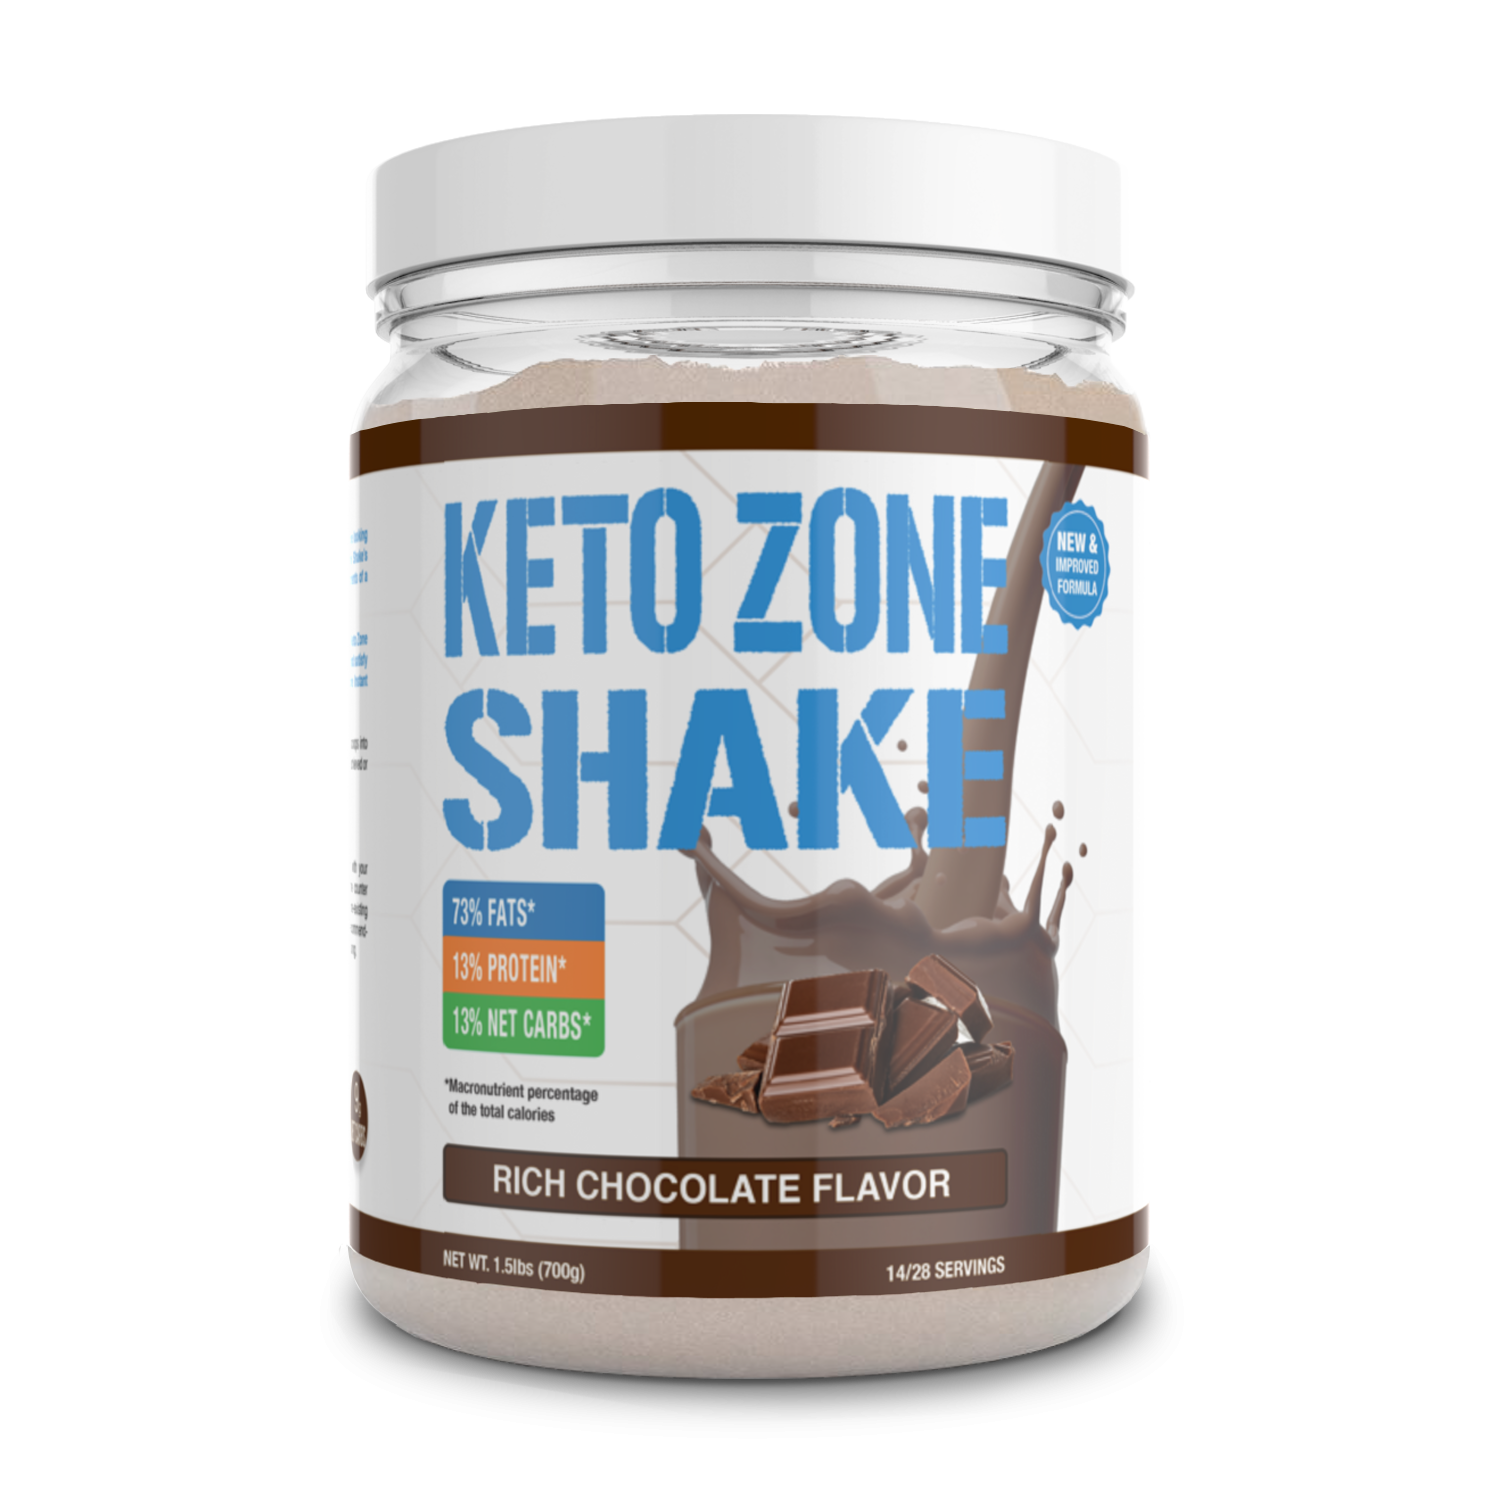 Keto Zone Shake (Rich Chocolate Flavor)